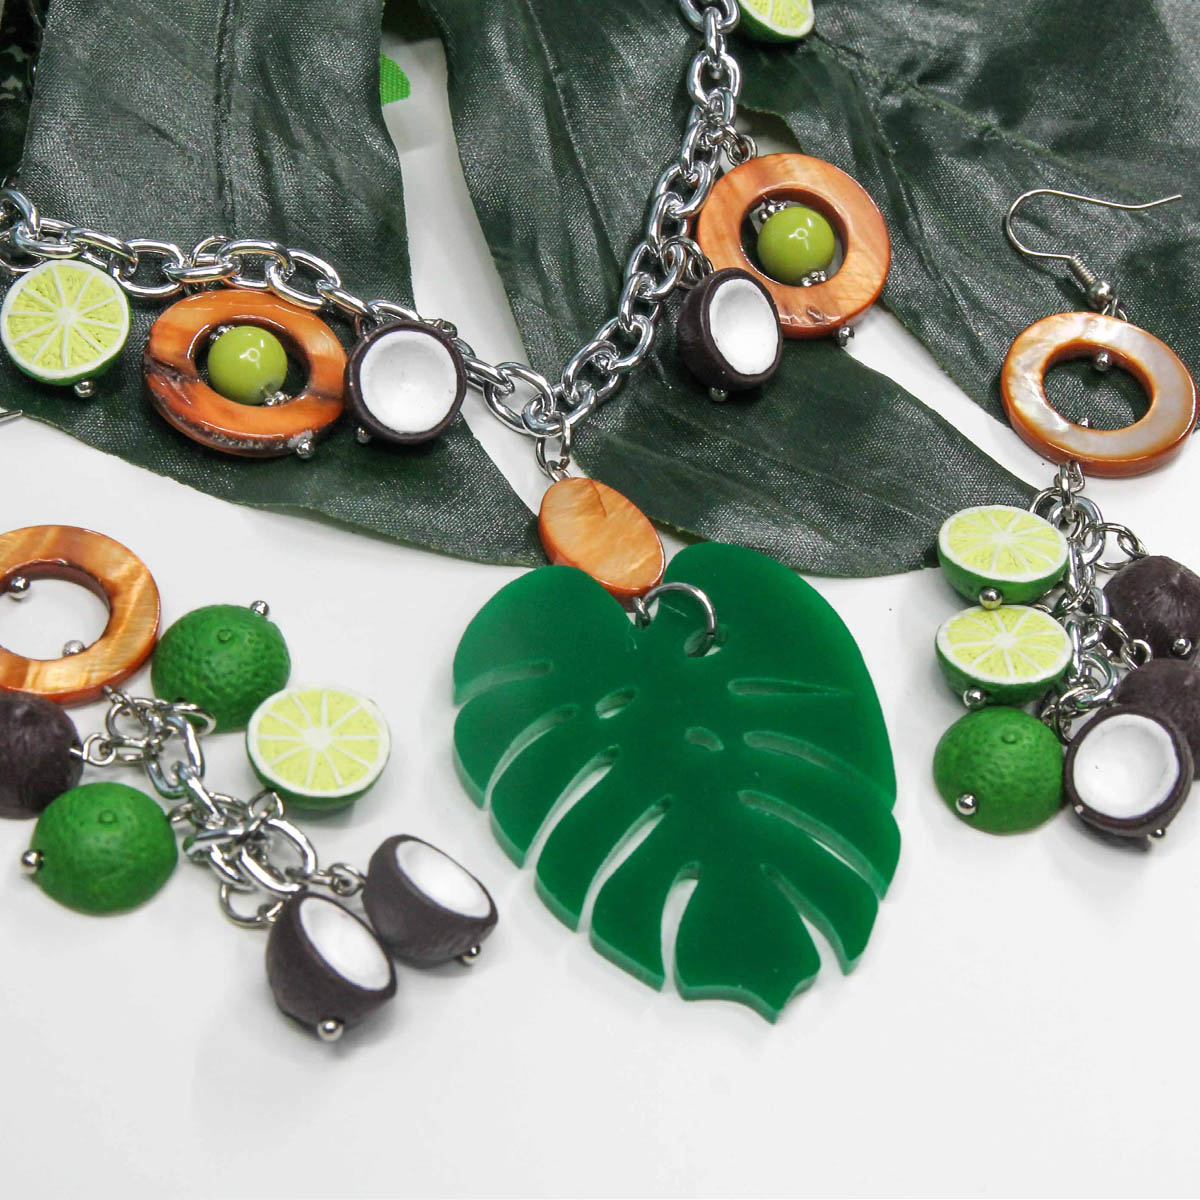 Tropical Monstera Leaf Necklace & Earrings Jewelry Setproject Pinup Pertaining To Most Current Tropical Palm Pendant Necklaces (View 24 of 25)